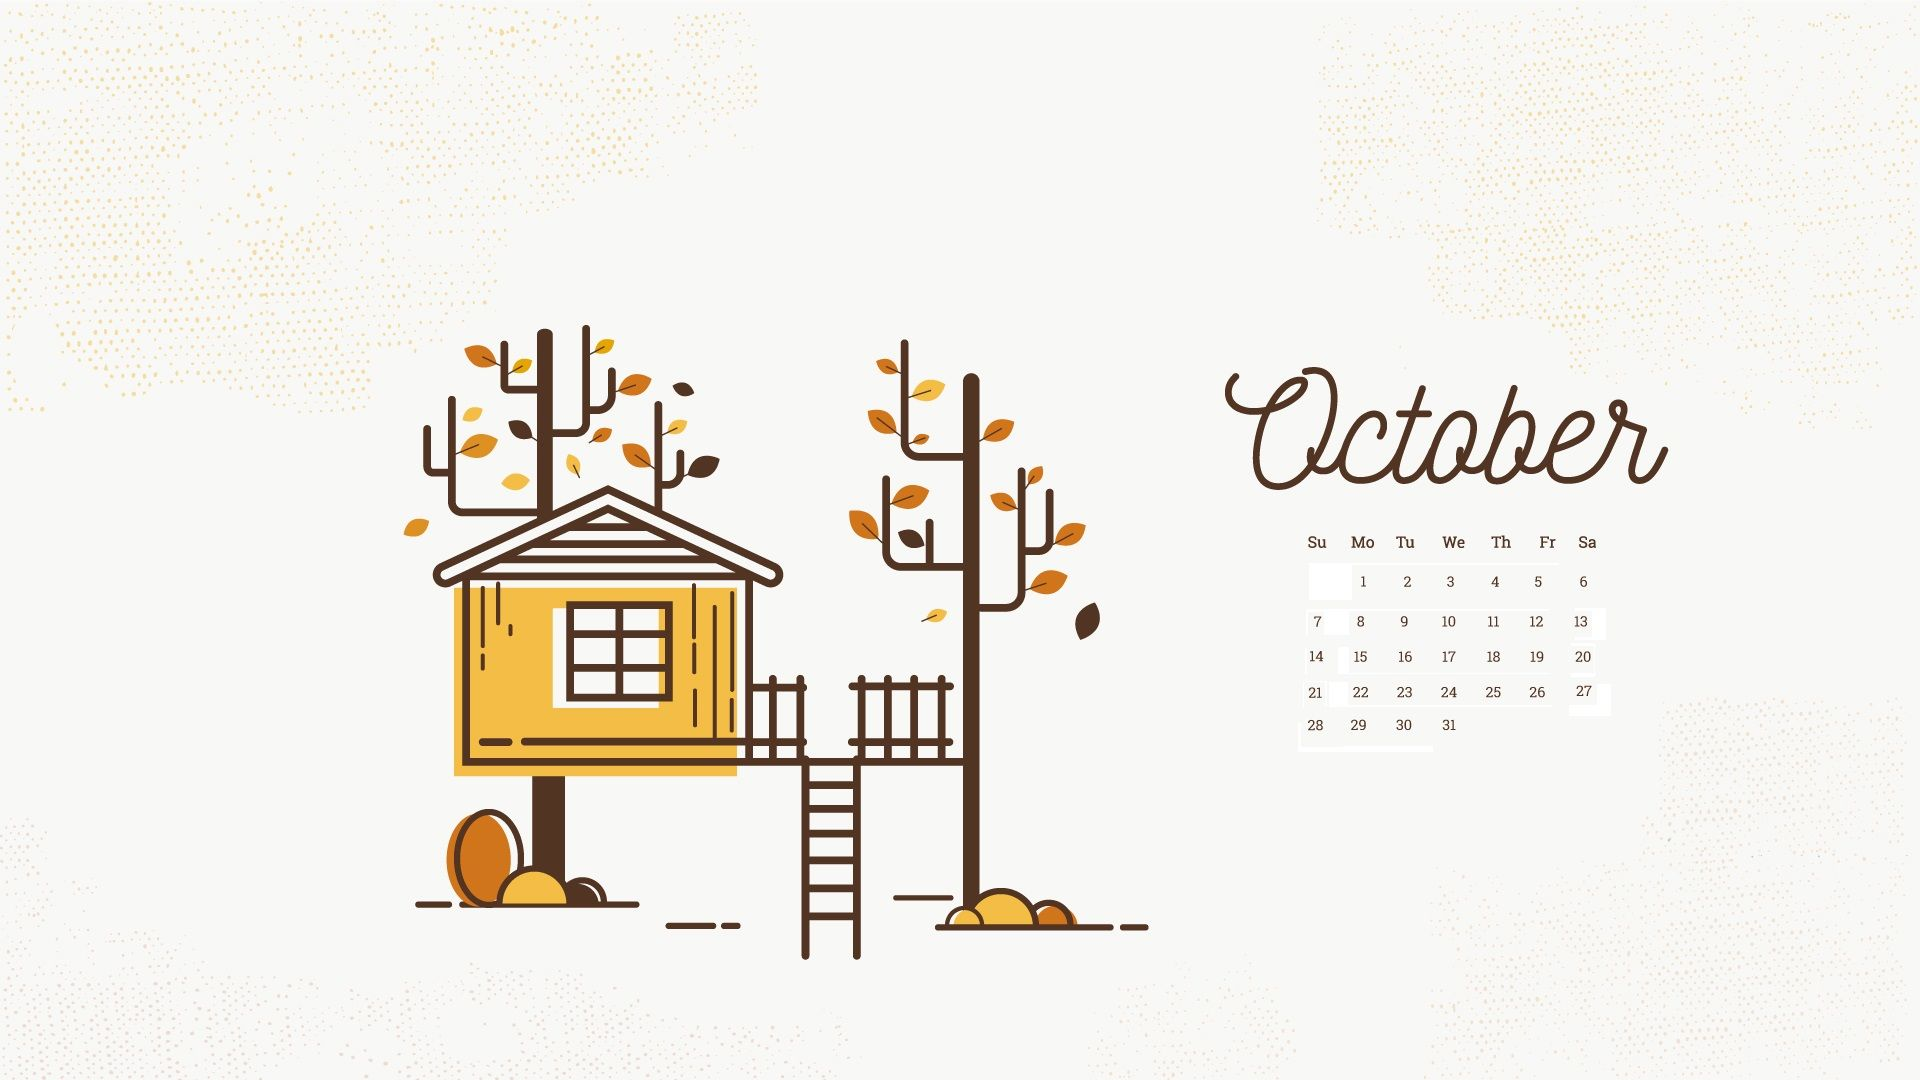 October 2018 Calendar Wallpapers Calendar Wallpaper October